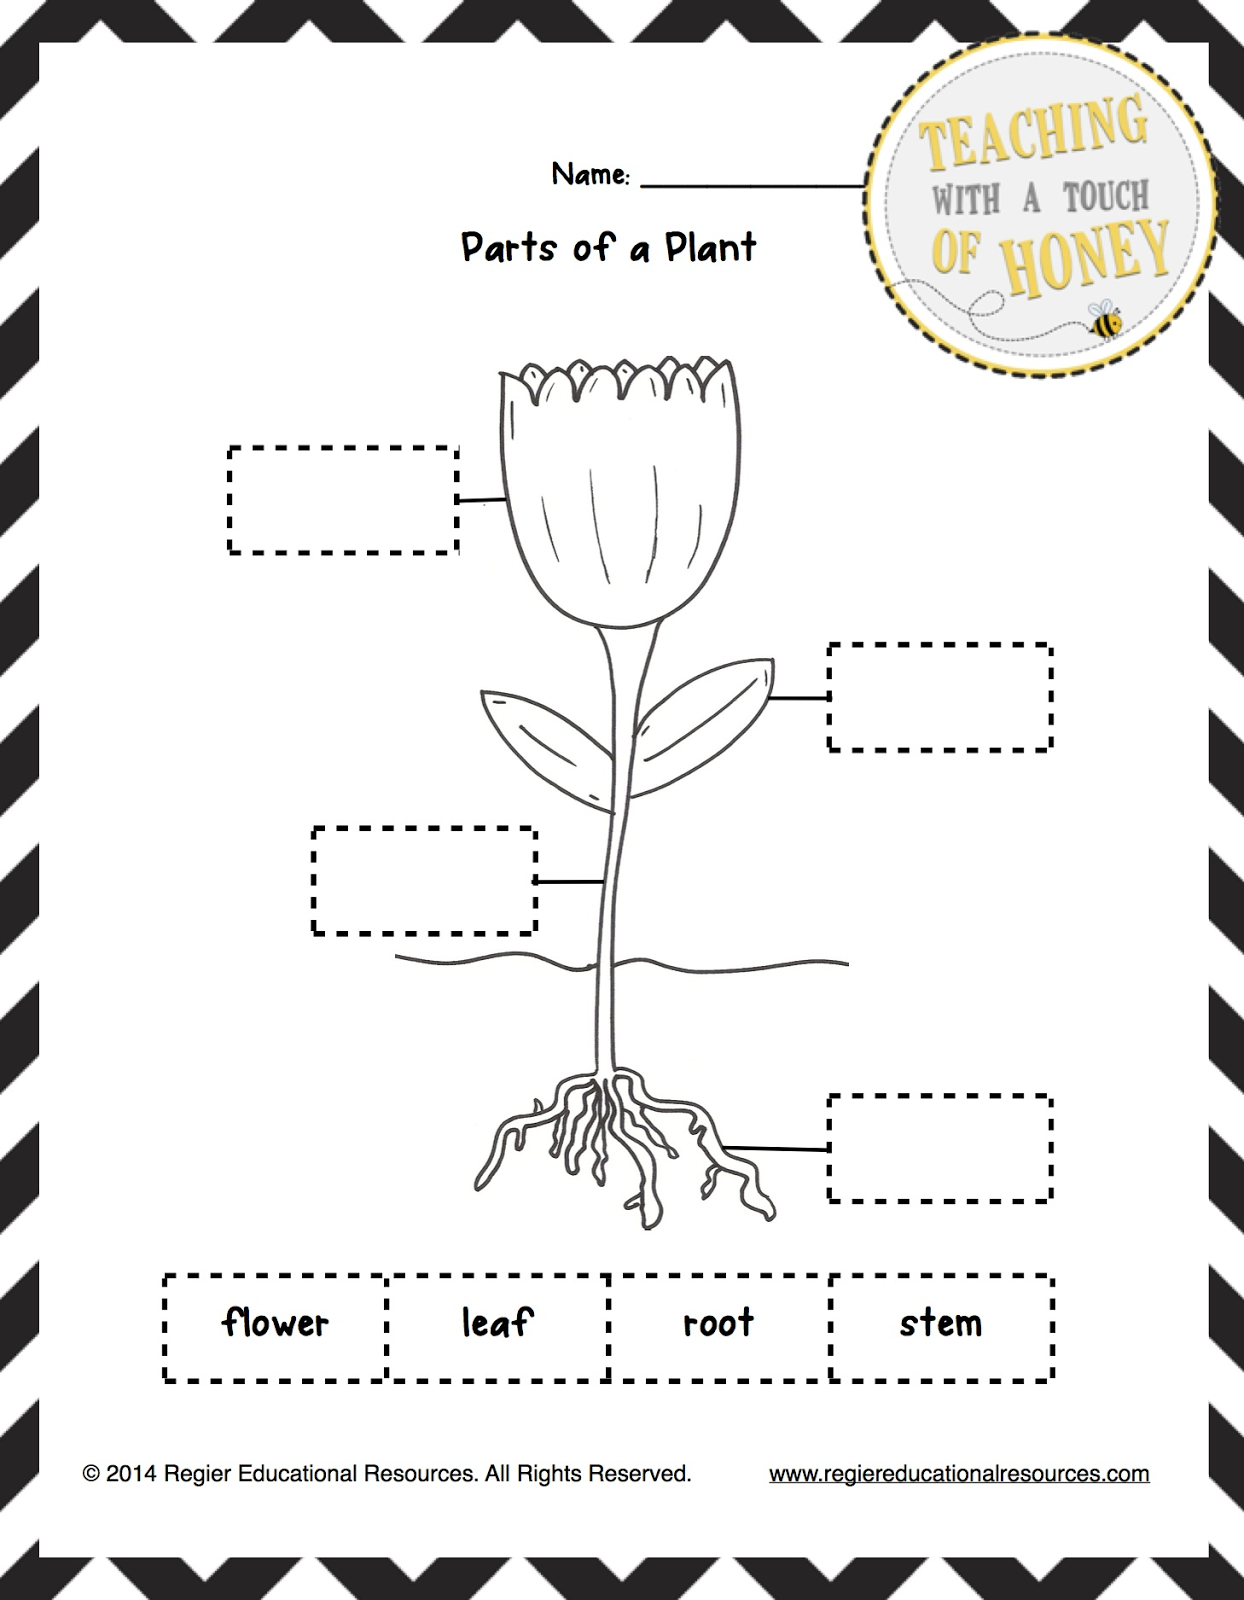 parts of a plant worksheet - Termolak